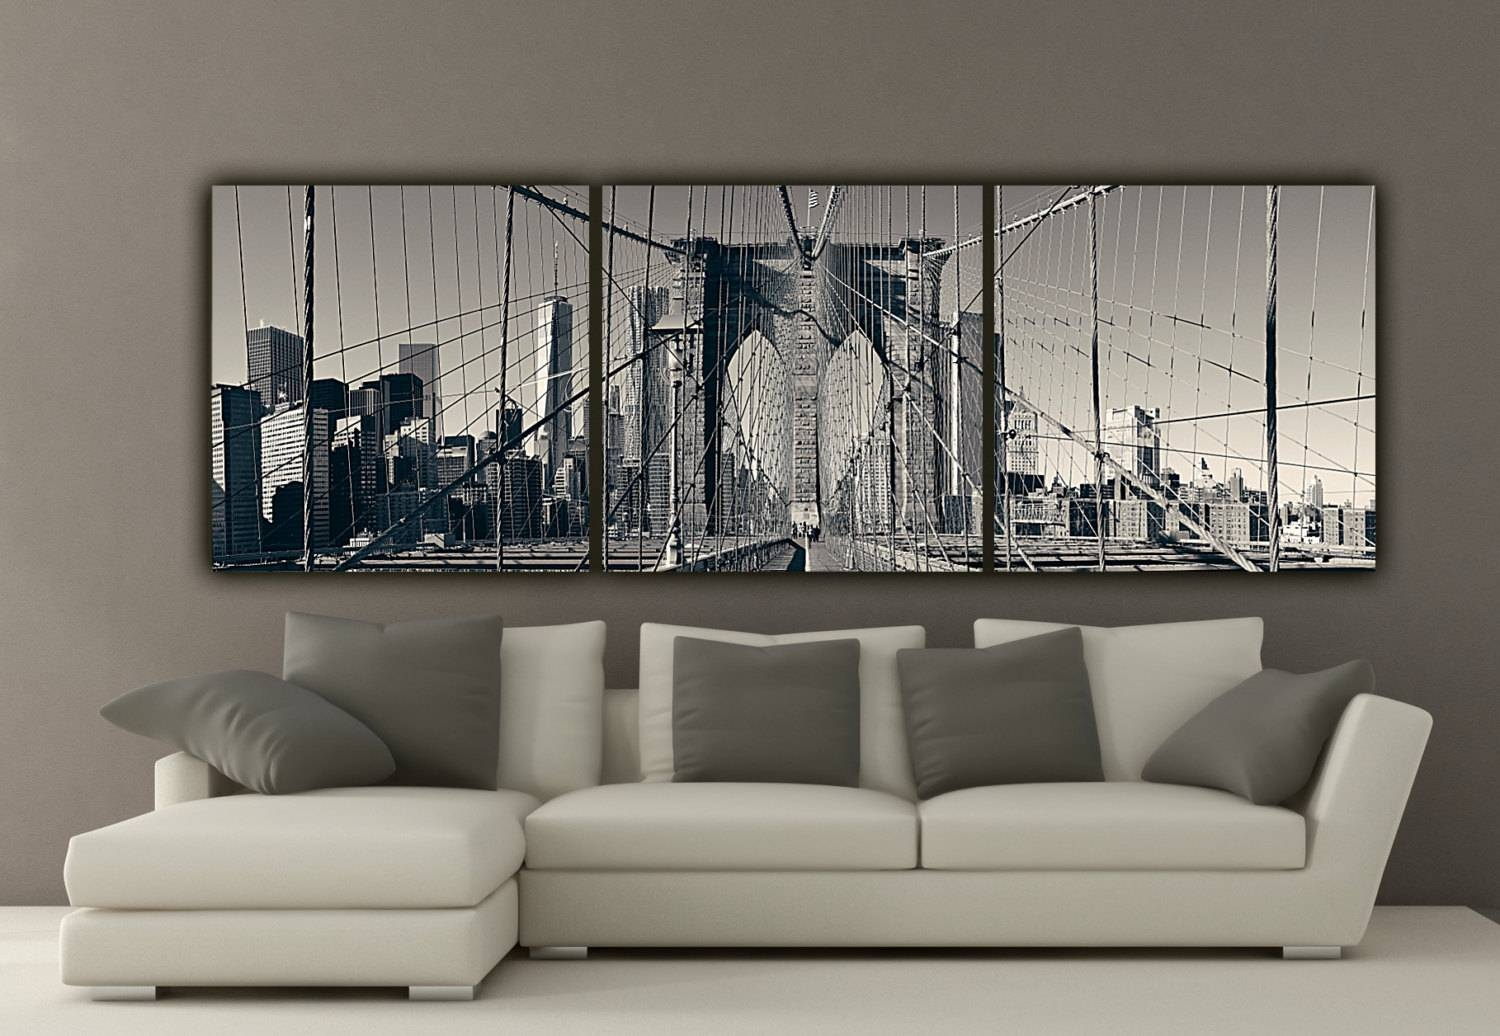 New York Brooklyn Bridge Canvas Wall Art Black And White New pertaining to Most Recently Released New York City Wall Art